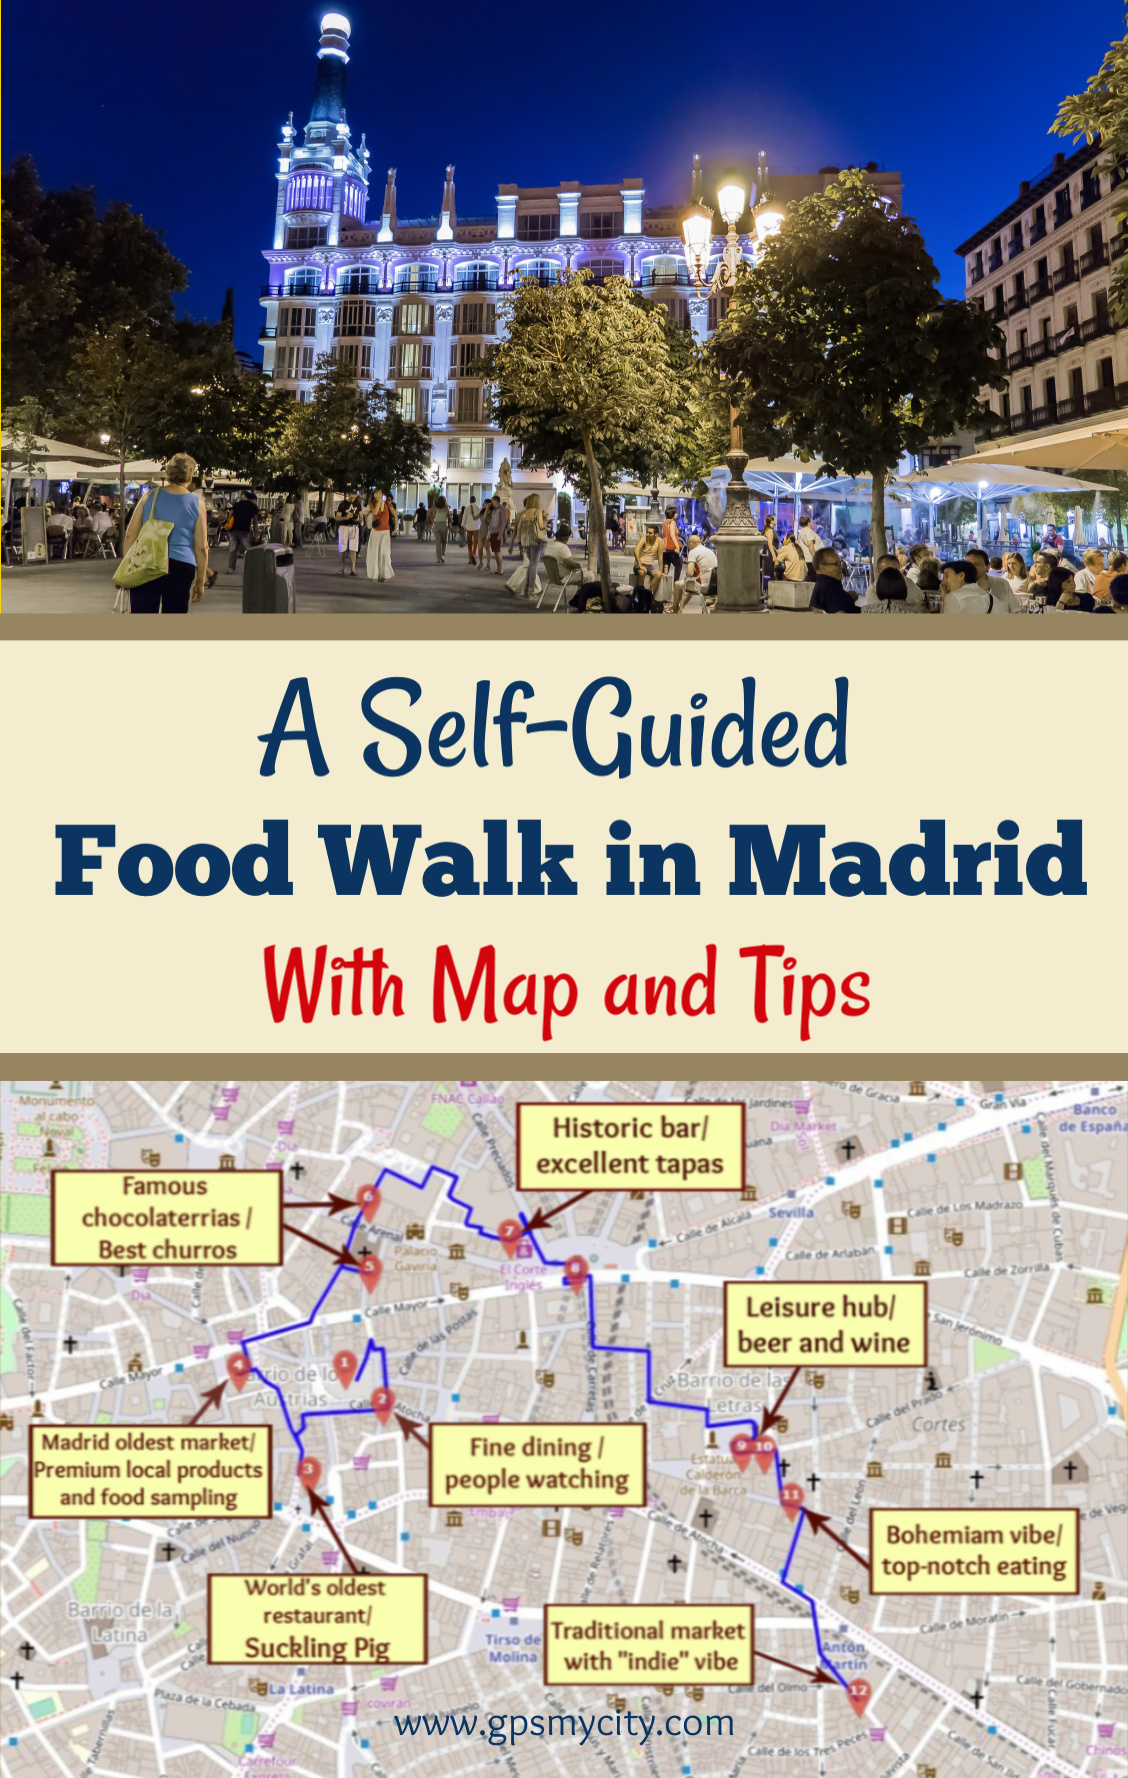 A Self-Guided Food Walk in Madrid on tour map beijing, tour map rome, tour map prague, tour map bangkok, tour map amsterdam, tour map edinburgh, tour map salzburg, tour map new york city, tour map san francisco, tour map boston, tour map lima, tour map london, tour map brussels,